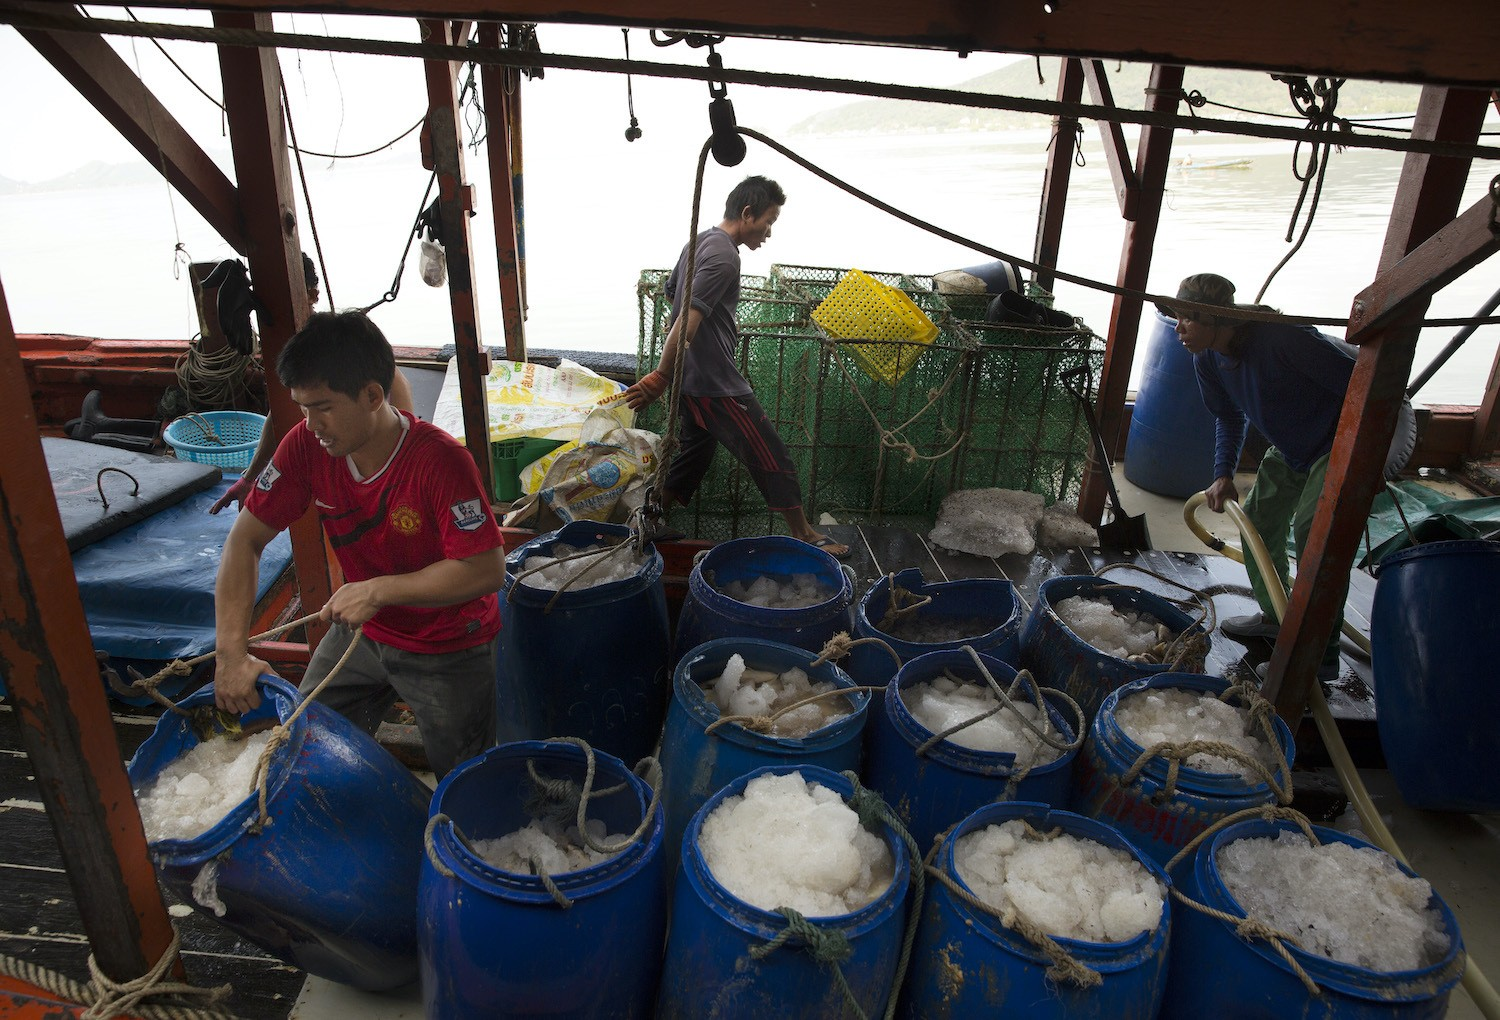 Barrels of fish packed on ice sit on fishing boat about to be unloaded at the port in Songkhla on February 2, 2016. Around 100 people have been arrested by authorities in a recent crackdown on abuses involving Thailand's multi-billion dollar seafood industry. The deep-rooted problem caused the huge global brand, Nestle in 2015 to admit that it had discovered clear evidence of slavery at sea in parts of the Thai supply chain. Thailand is the world's third largest exporter of seafood. February 2021